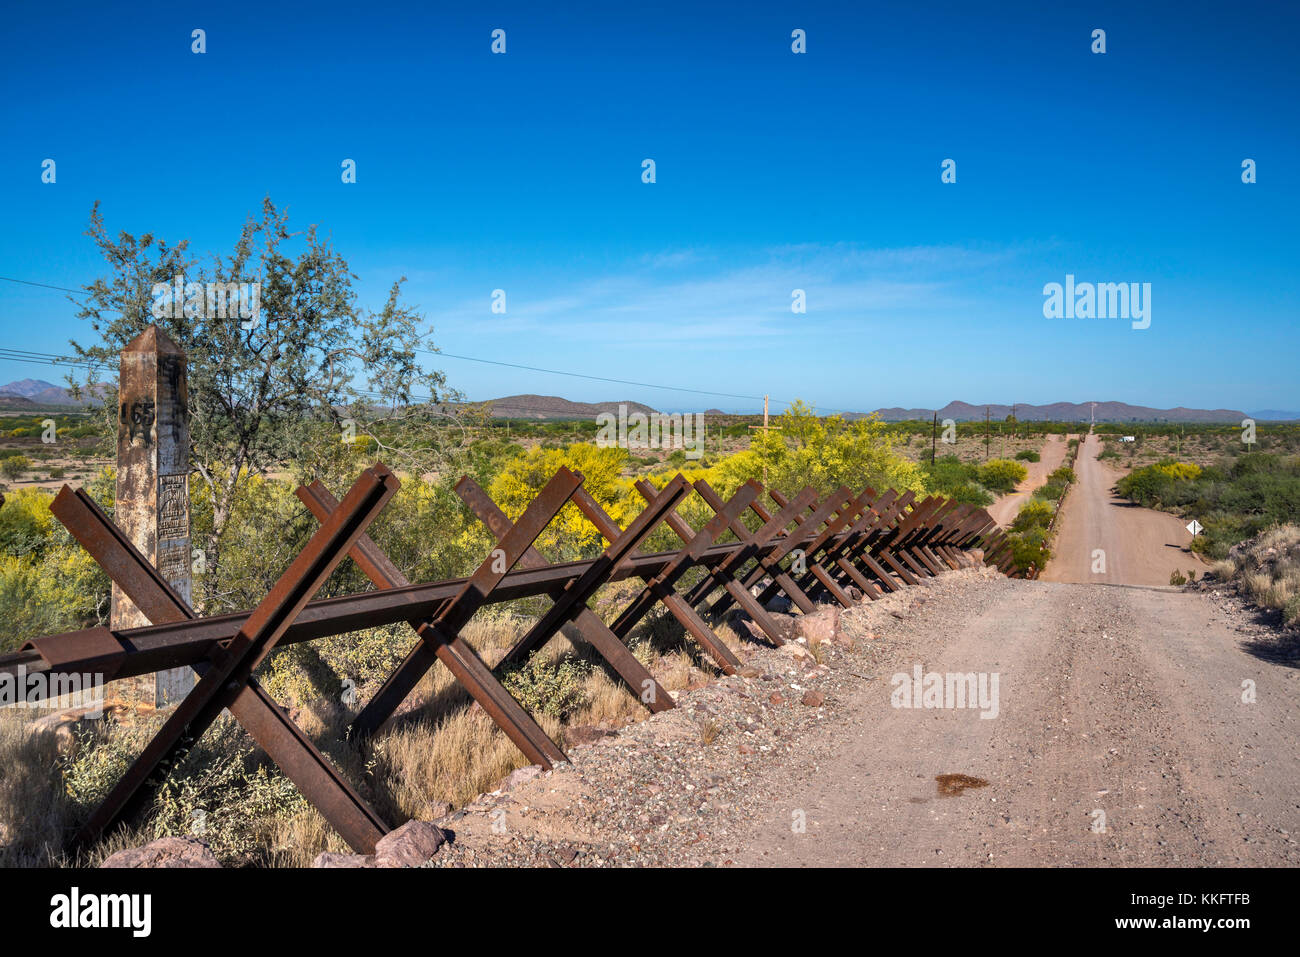 Barrier at Mexican border, Sonoran Desert, Organ Pipe Cactus National Monument, Arizona, USA - Stock Image